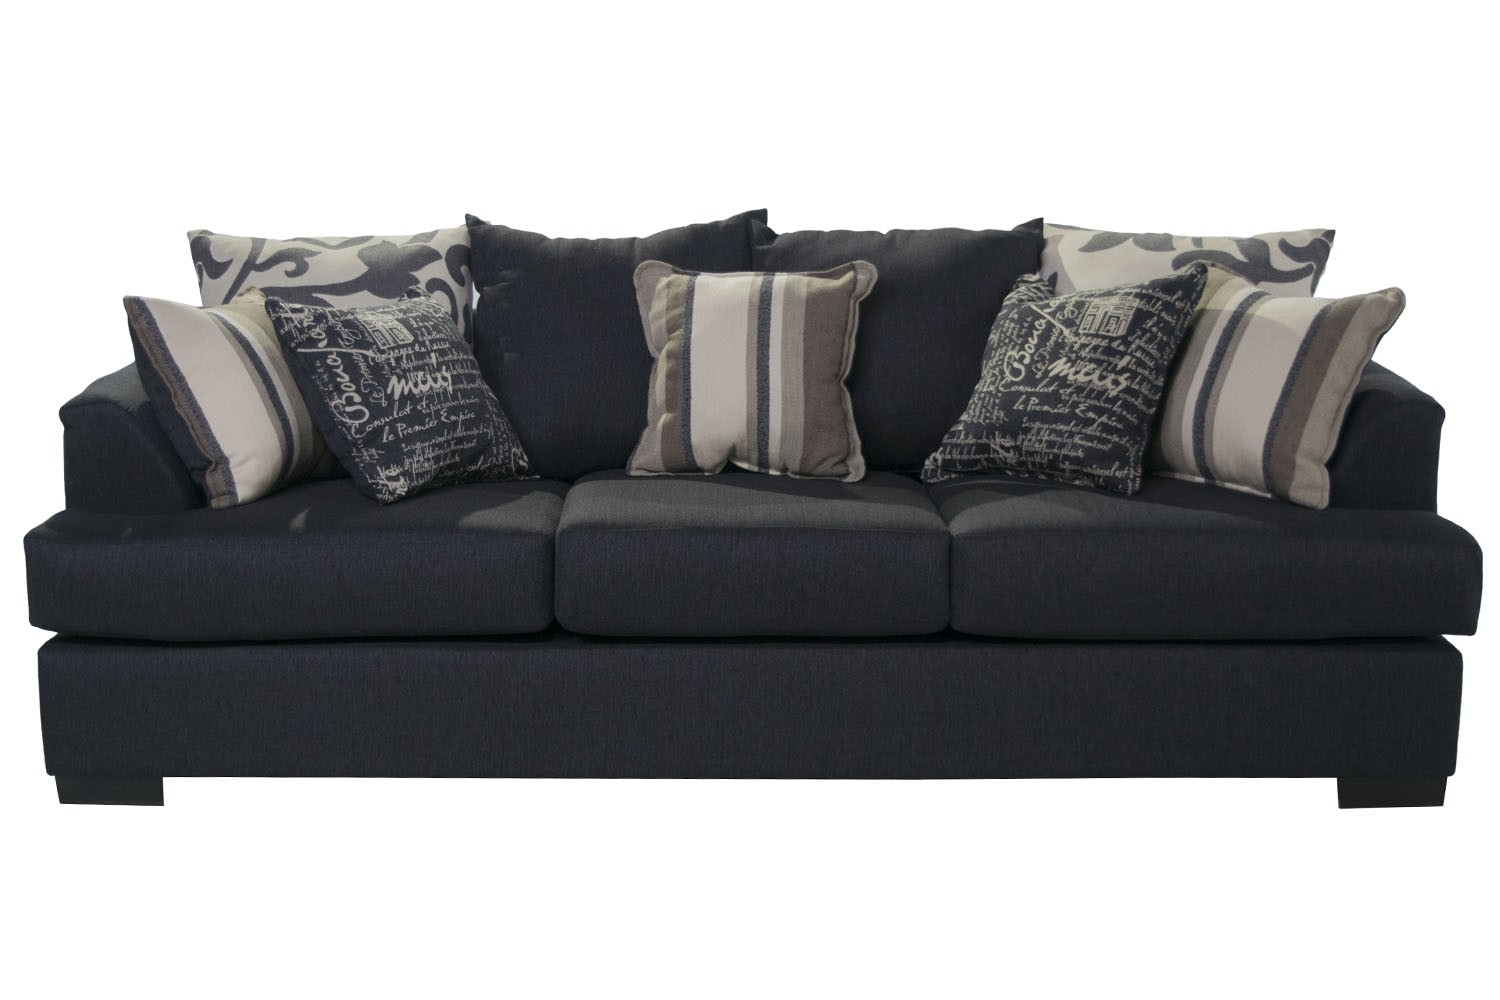 Sofas & Couches | Save Mor Online And In-Store with Norfolk Chocolate 6 Piece Sectionals (Image 27 of 30)